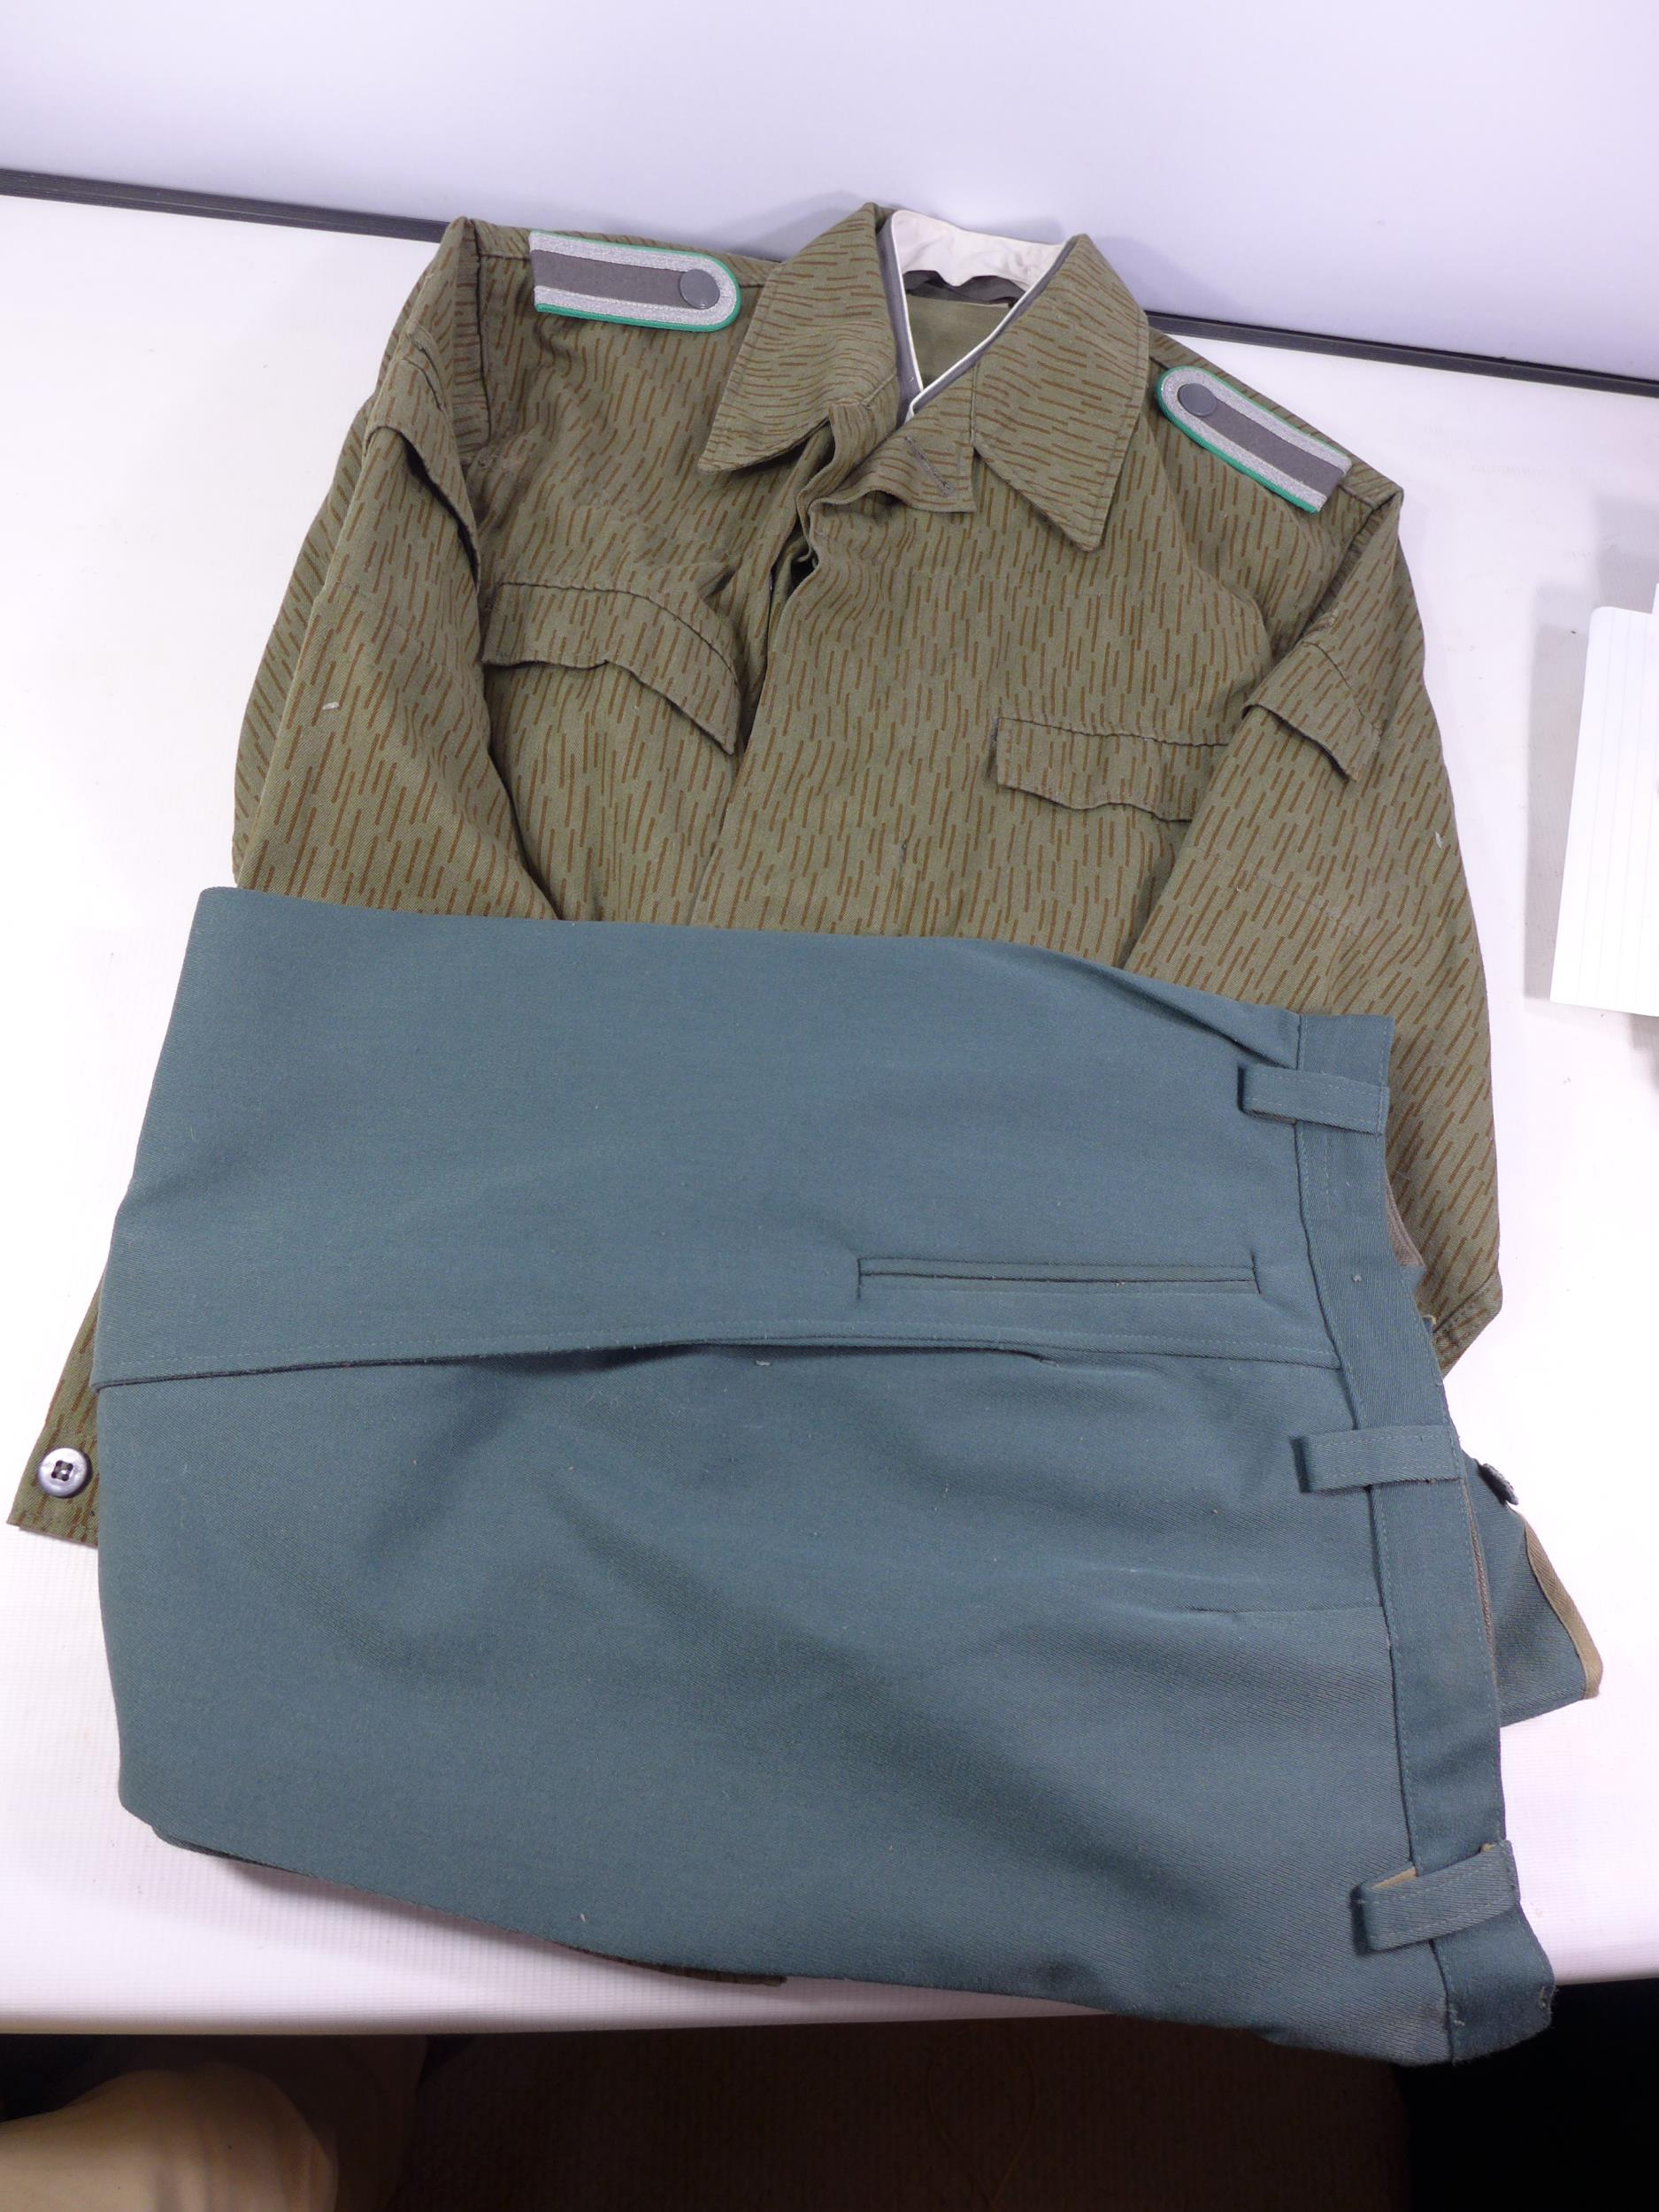 A POST WWII UNIFORM, PROBABLY GERMAN COMPRISING OF A JACKET AND TROUSERS